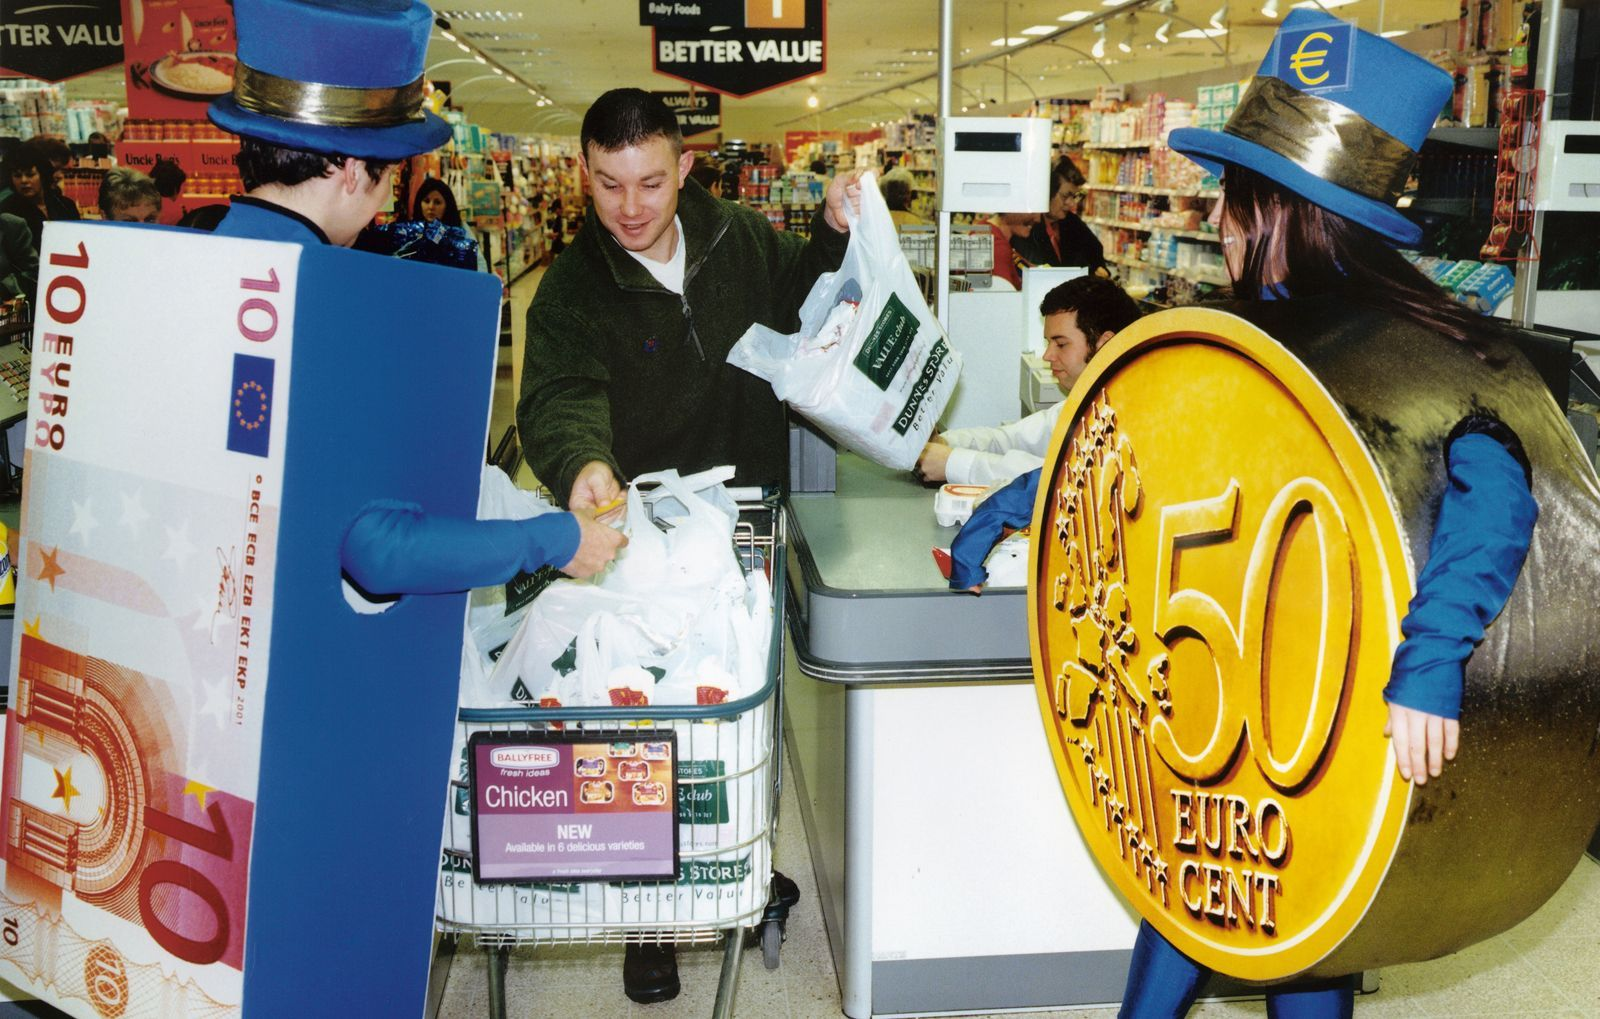 Irish students dressed as euro banknotes and coins at a shopping centre in Dublin in November 2001.  Photo © BCE.